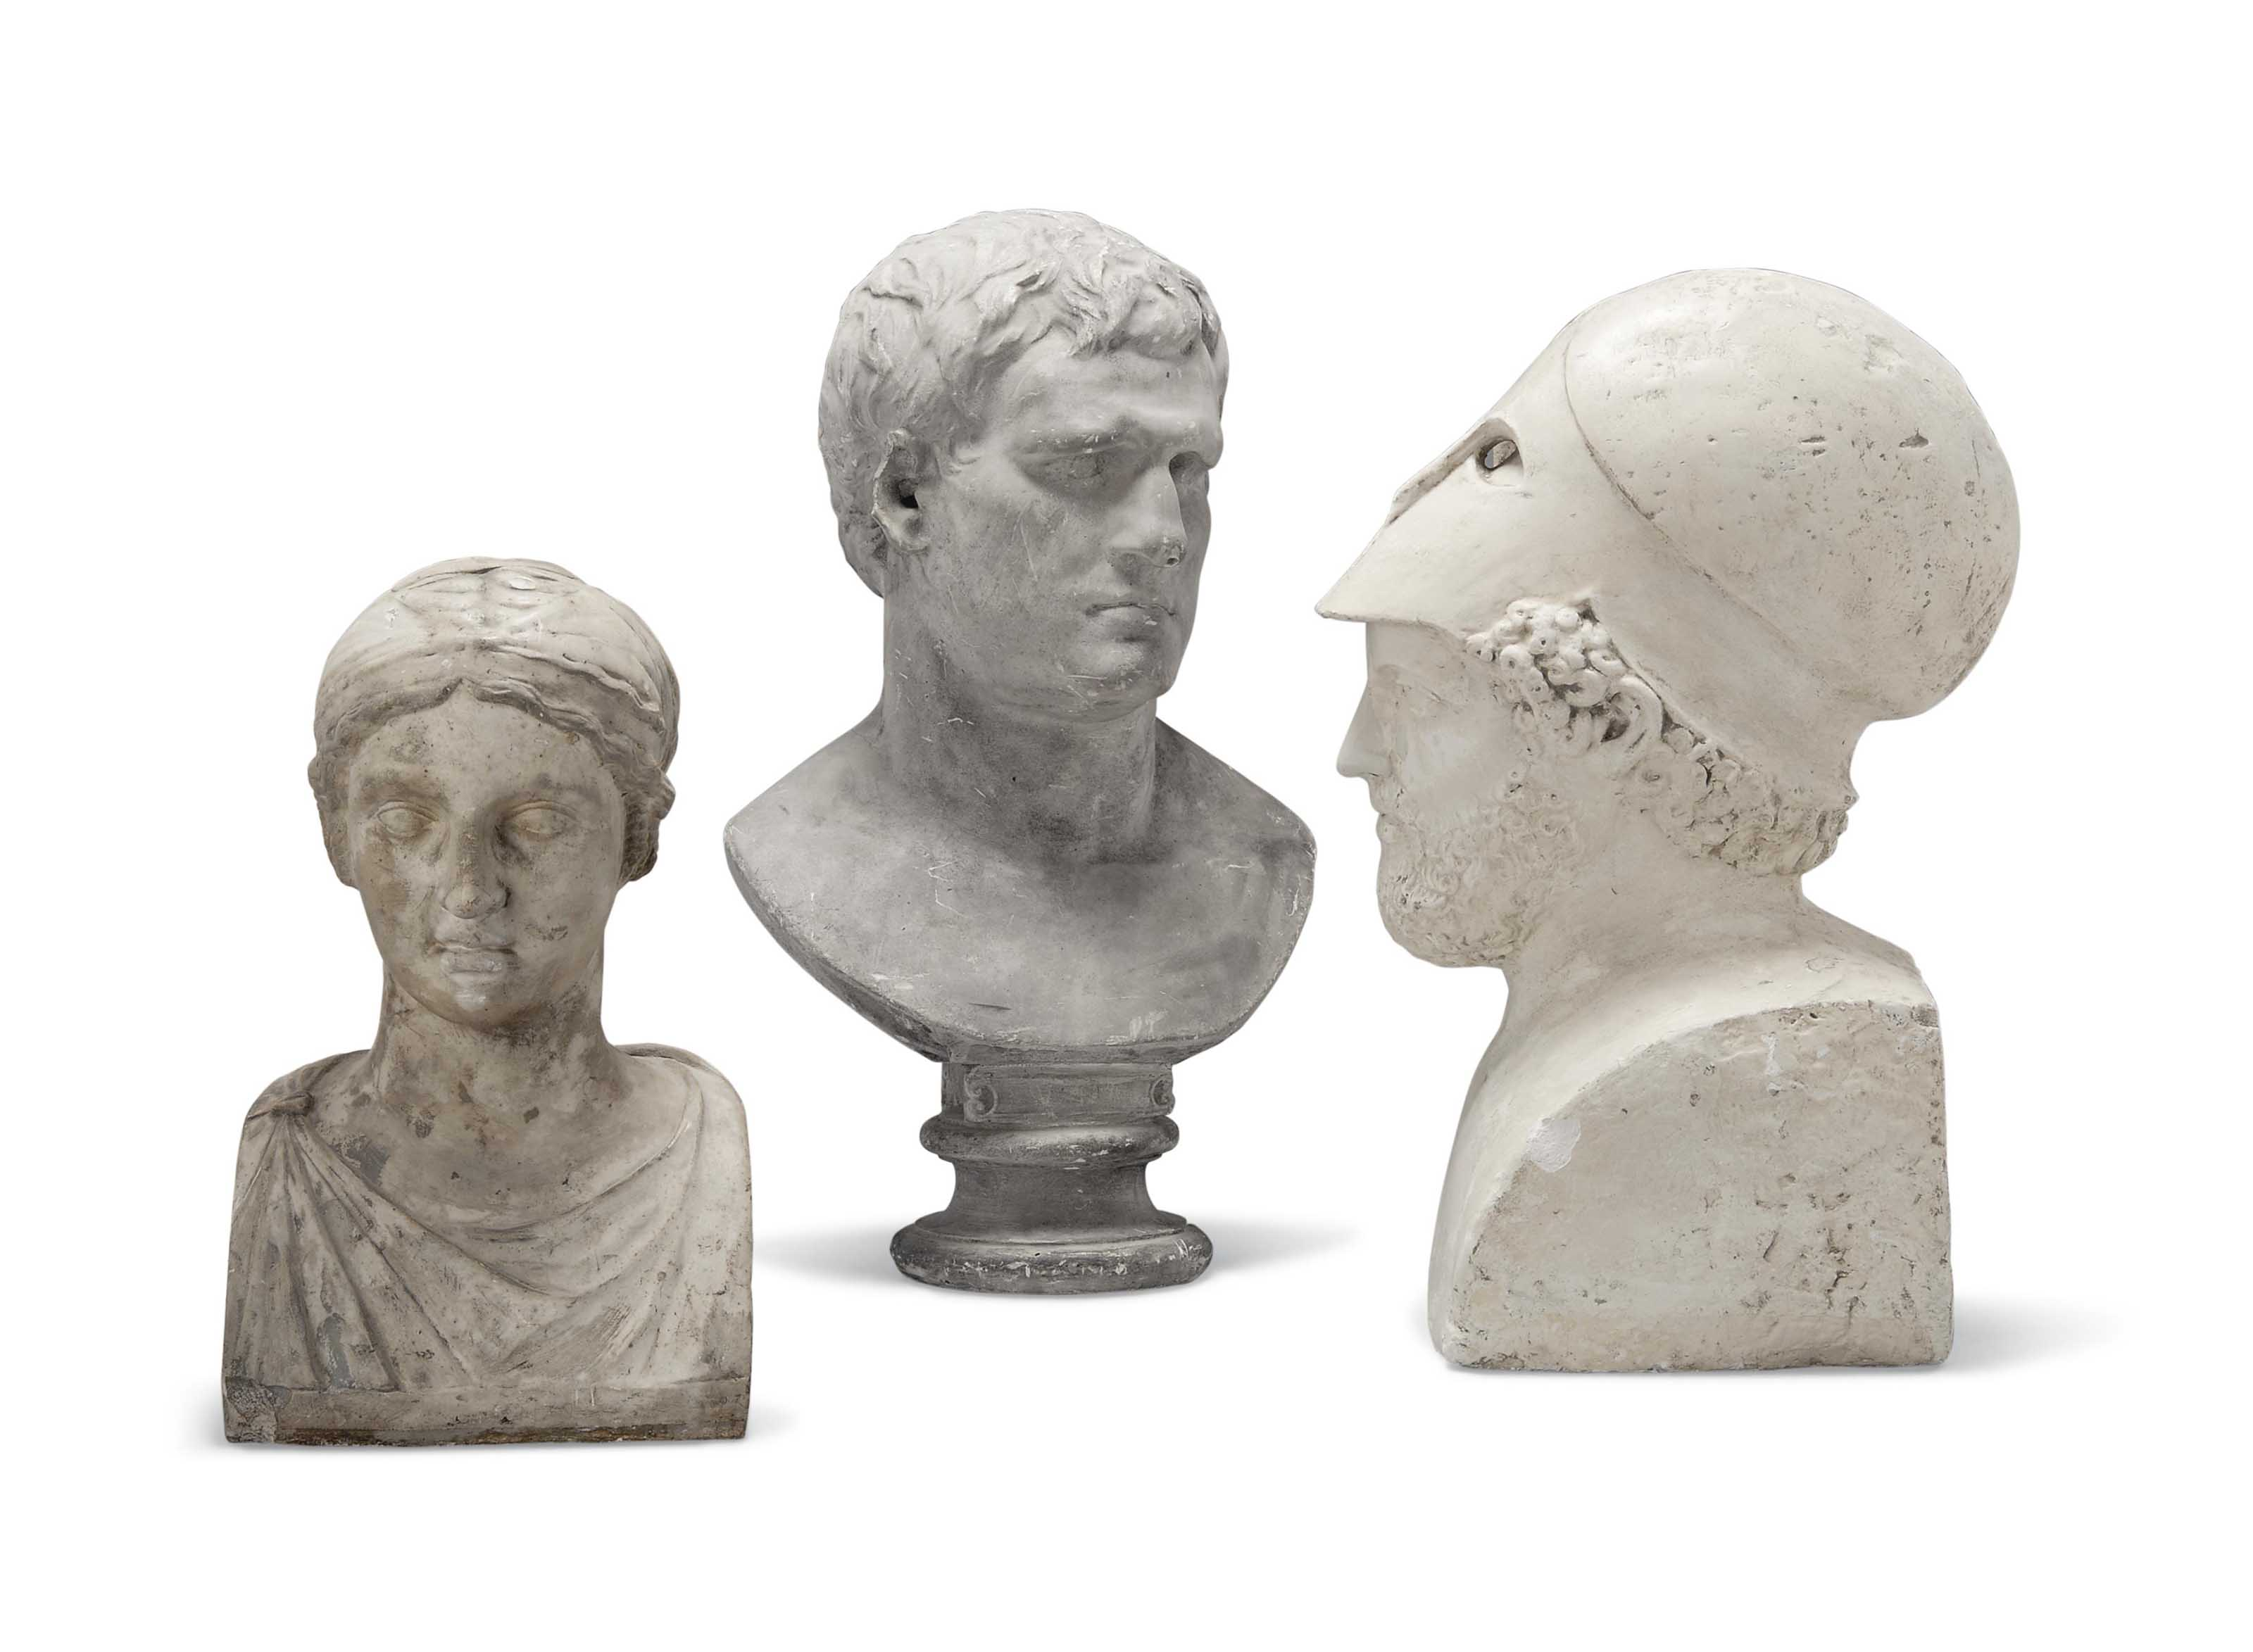 A PLASTER BUST OF PERICLES